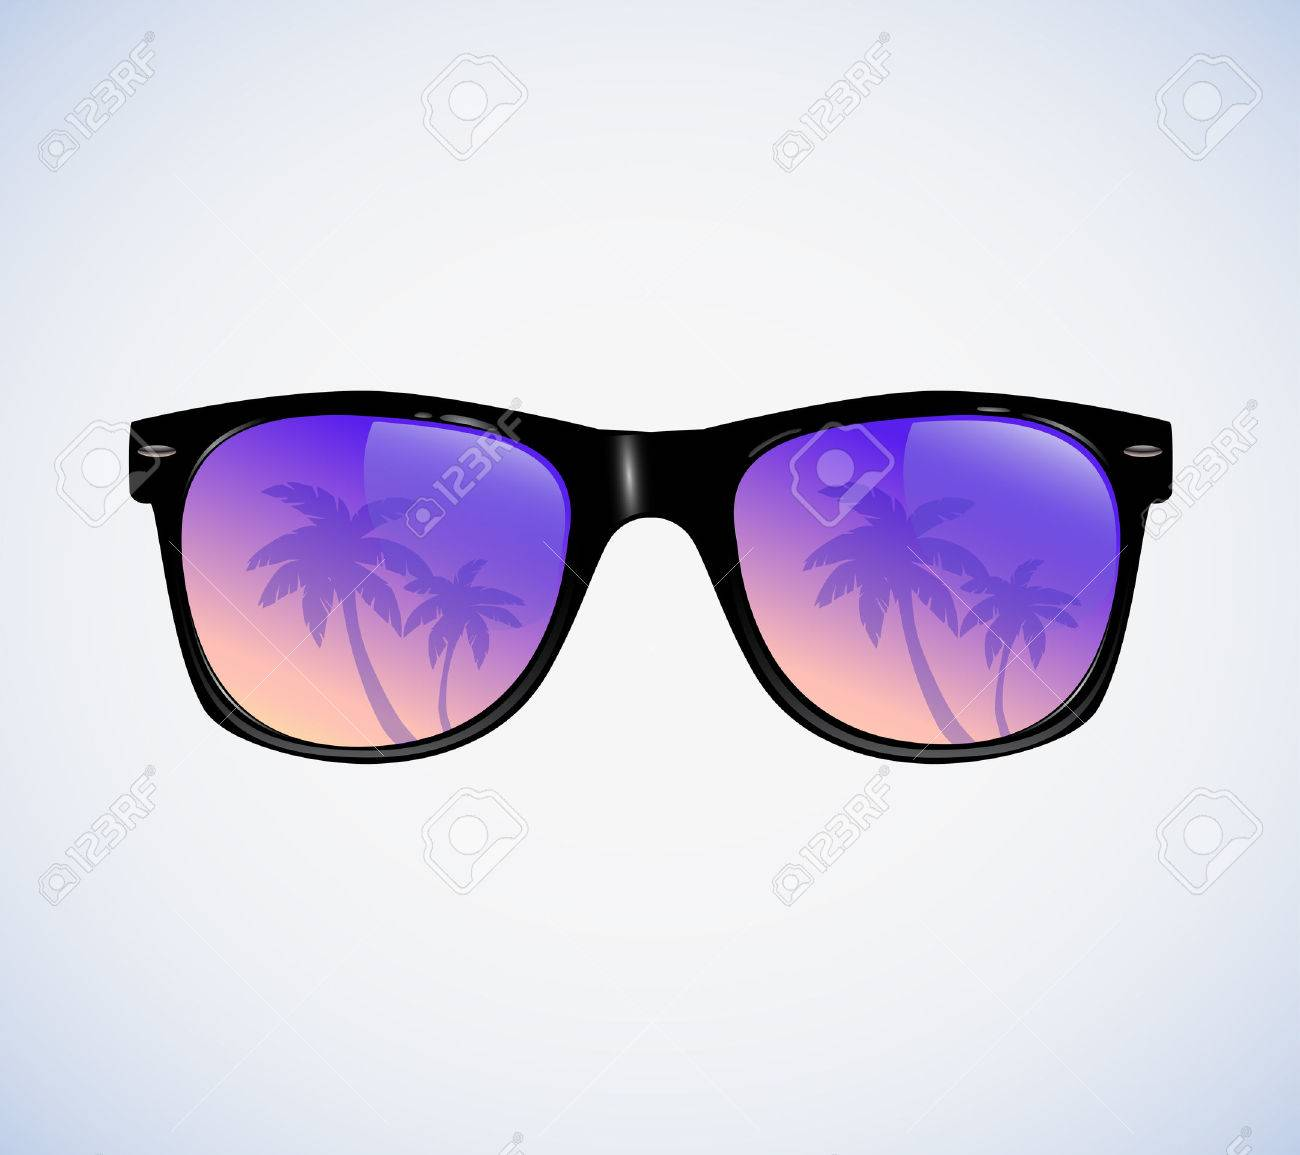 Sunglasses with palms reflection vector illustration - 46285035